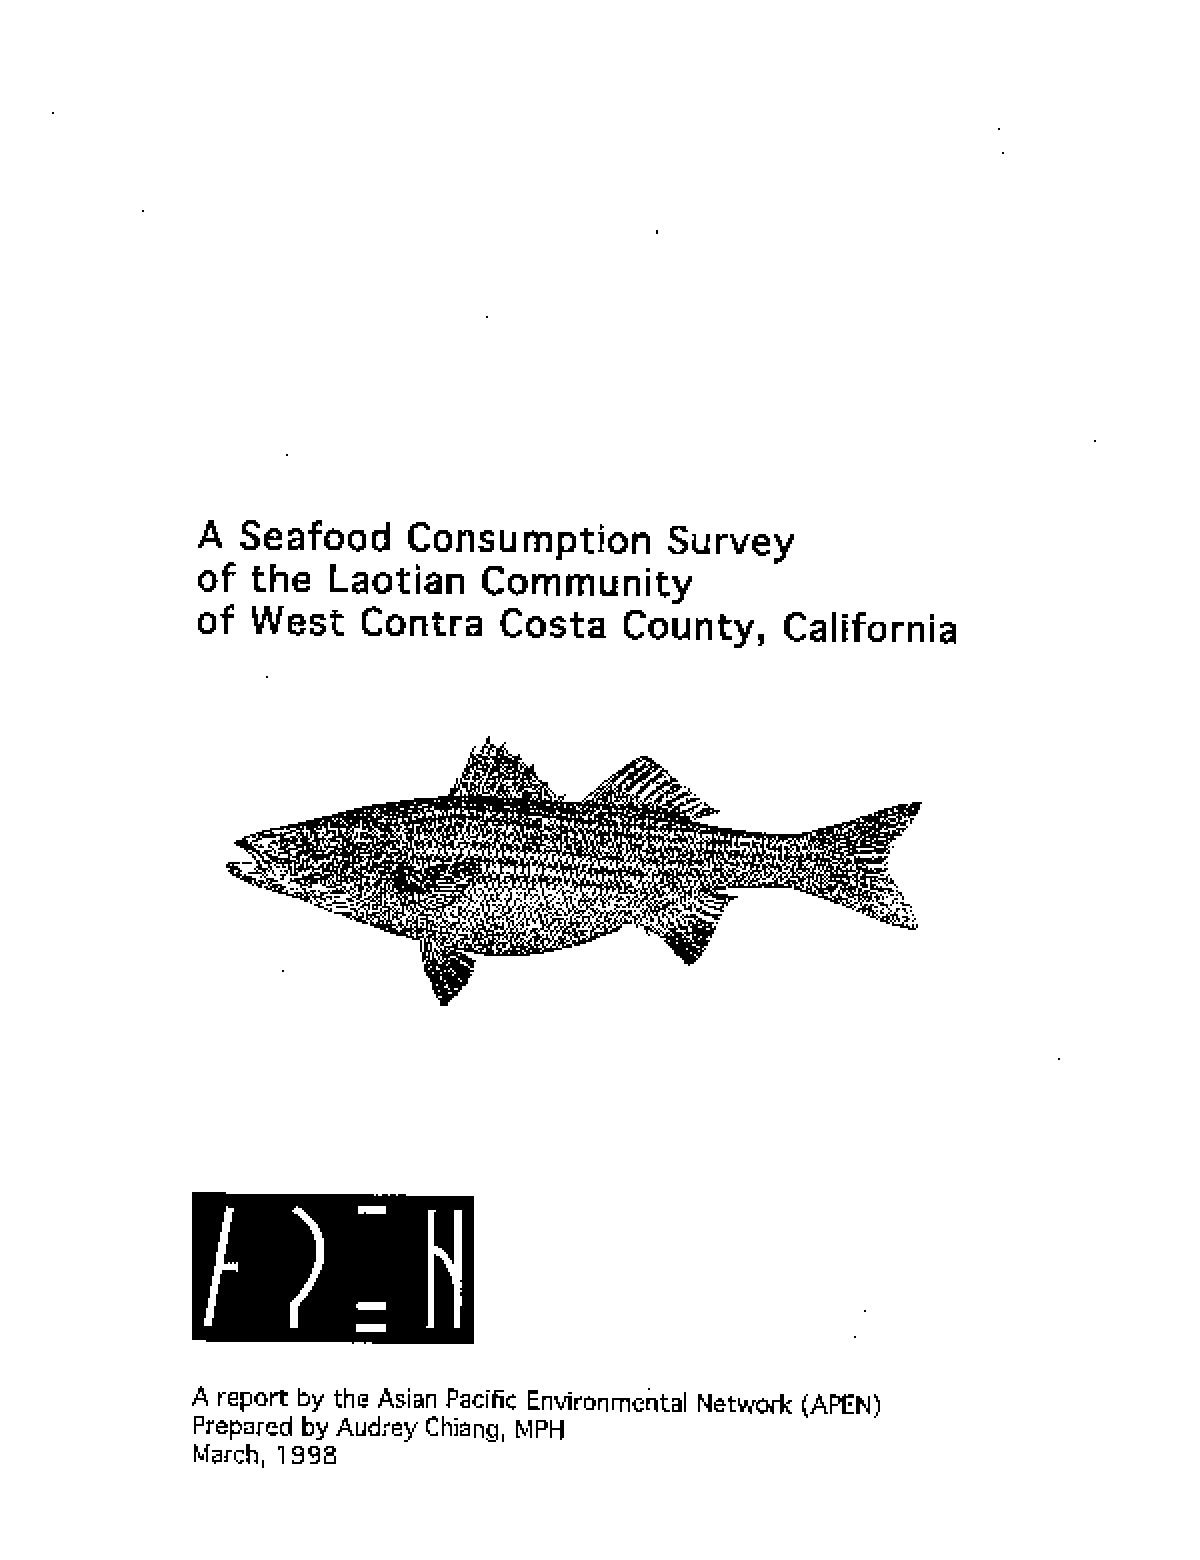 A Seafood Consumption Survey of the Laotian Community of West Contra Costa County, California